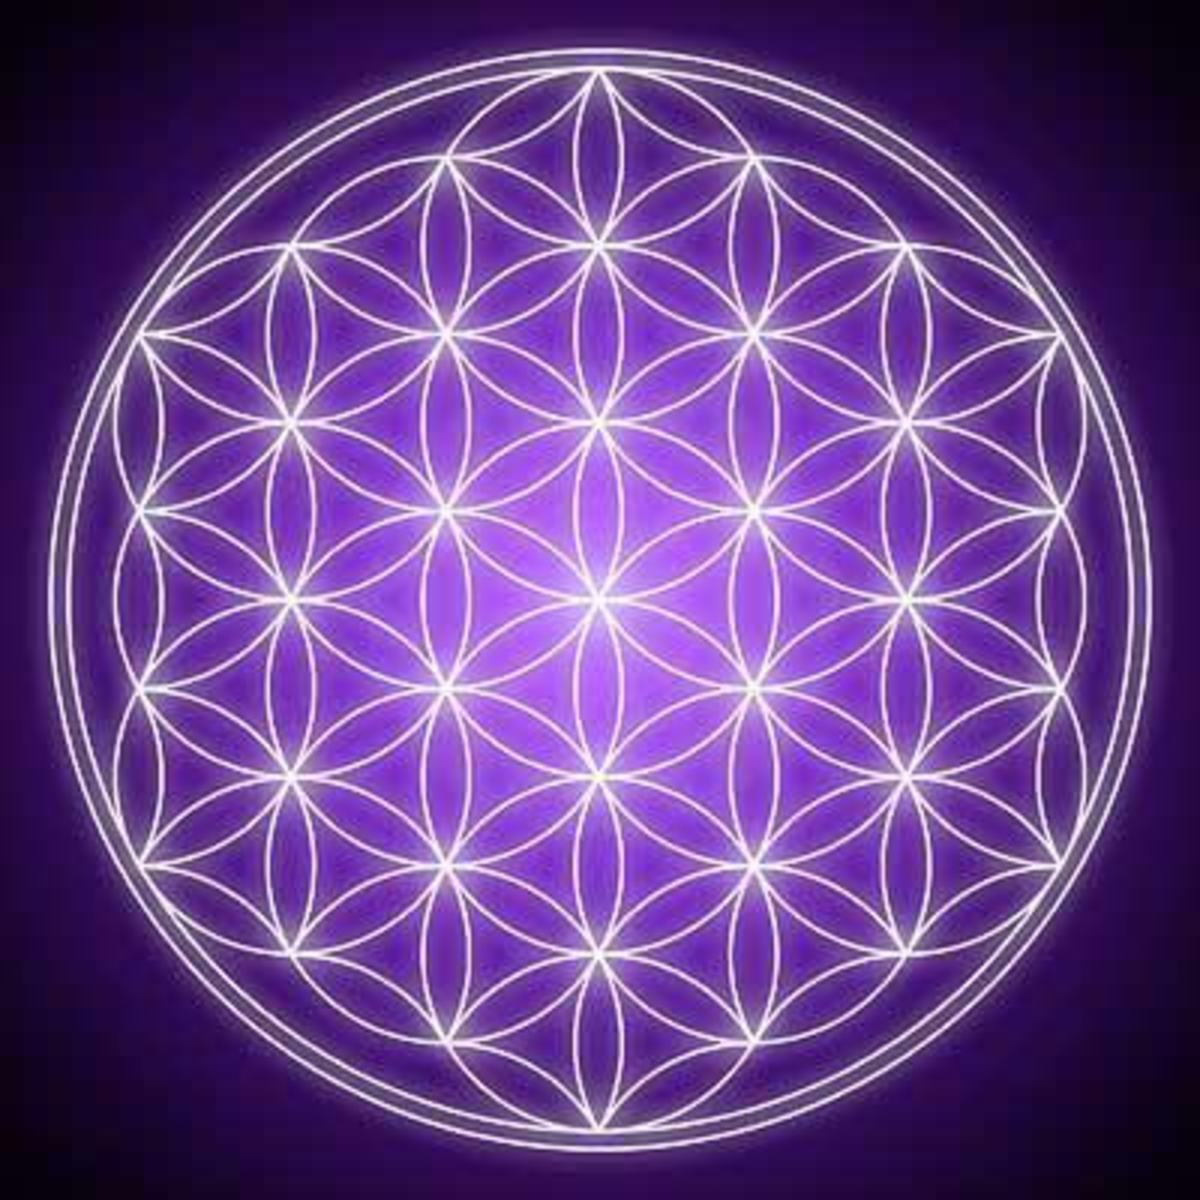 Have you ever heard of the Flower Of Life?